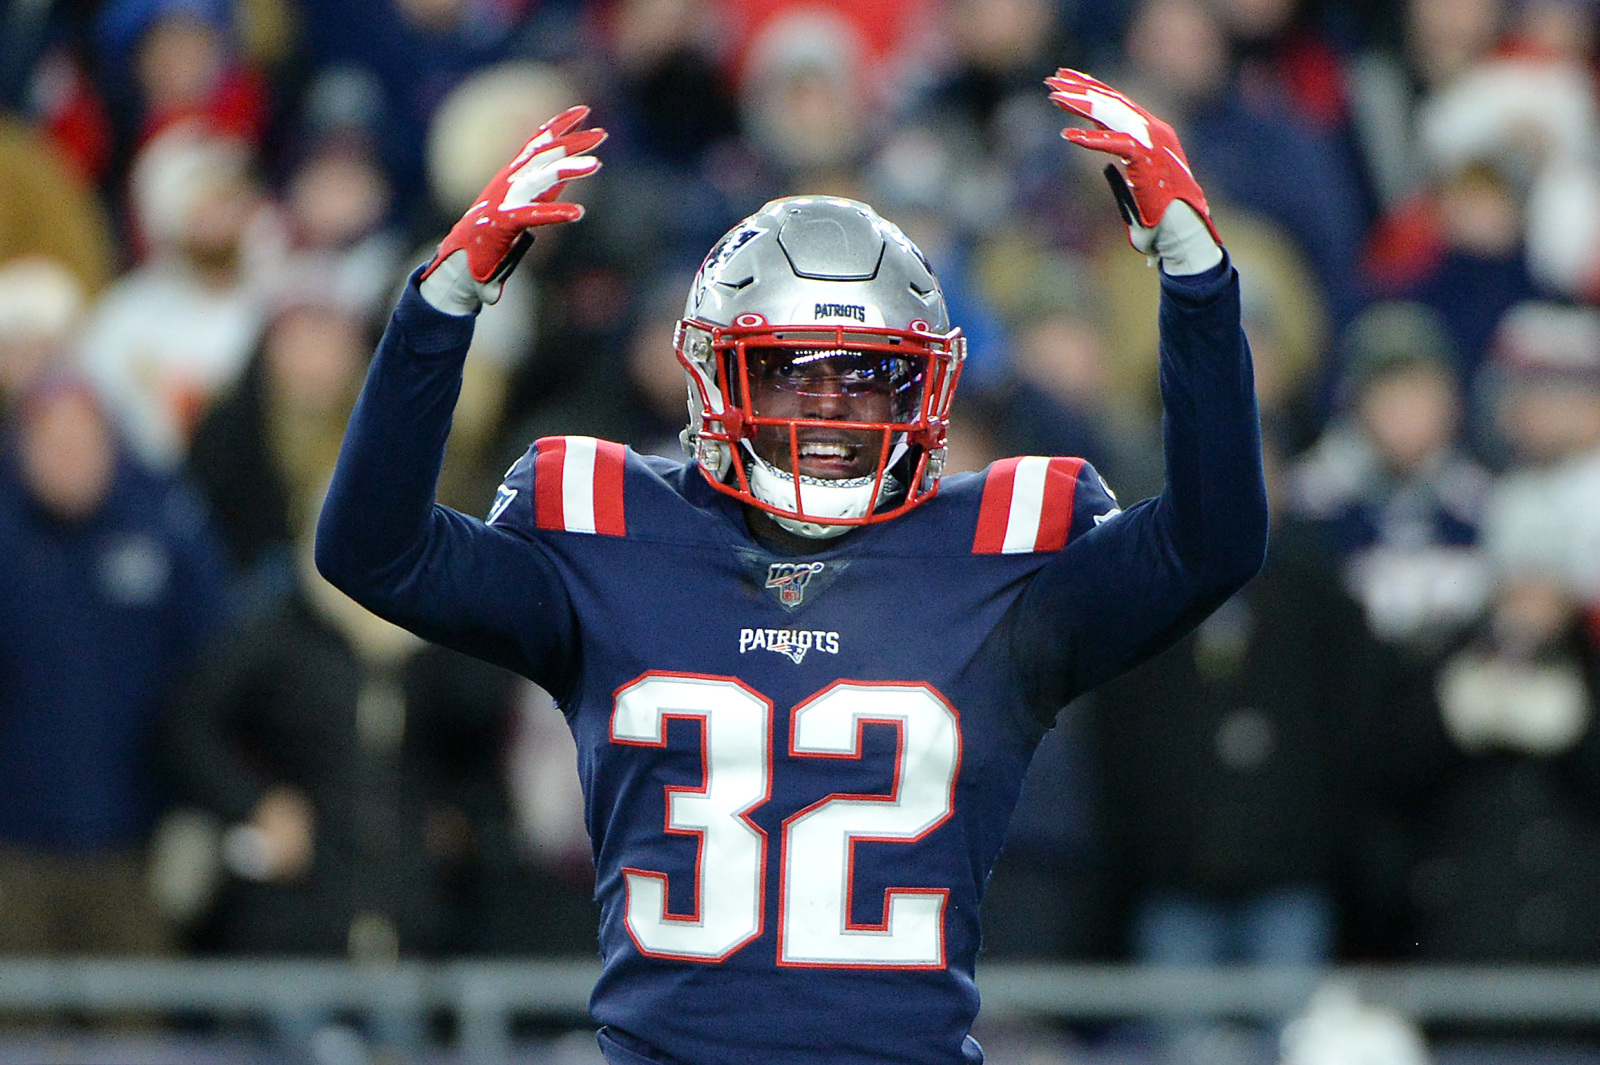 Patriots bring back Devin McCourty on a bargain contract